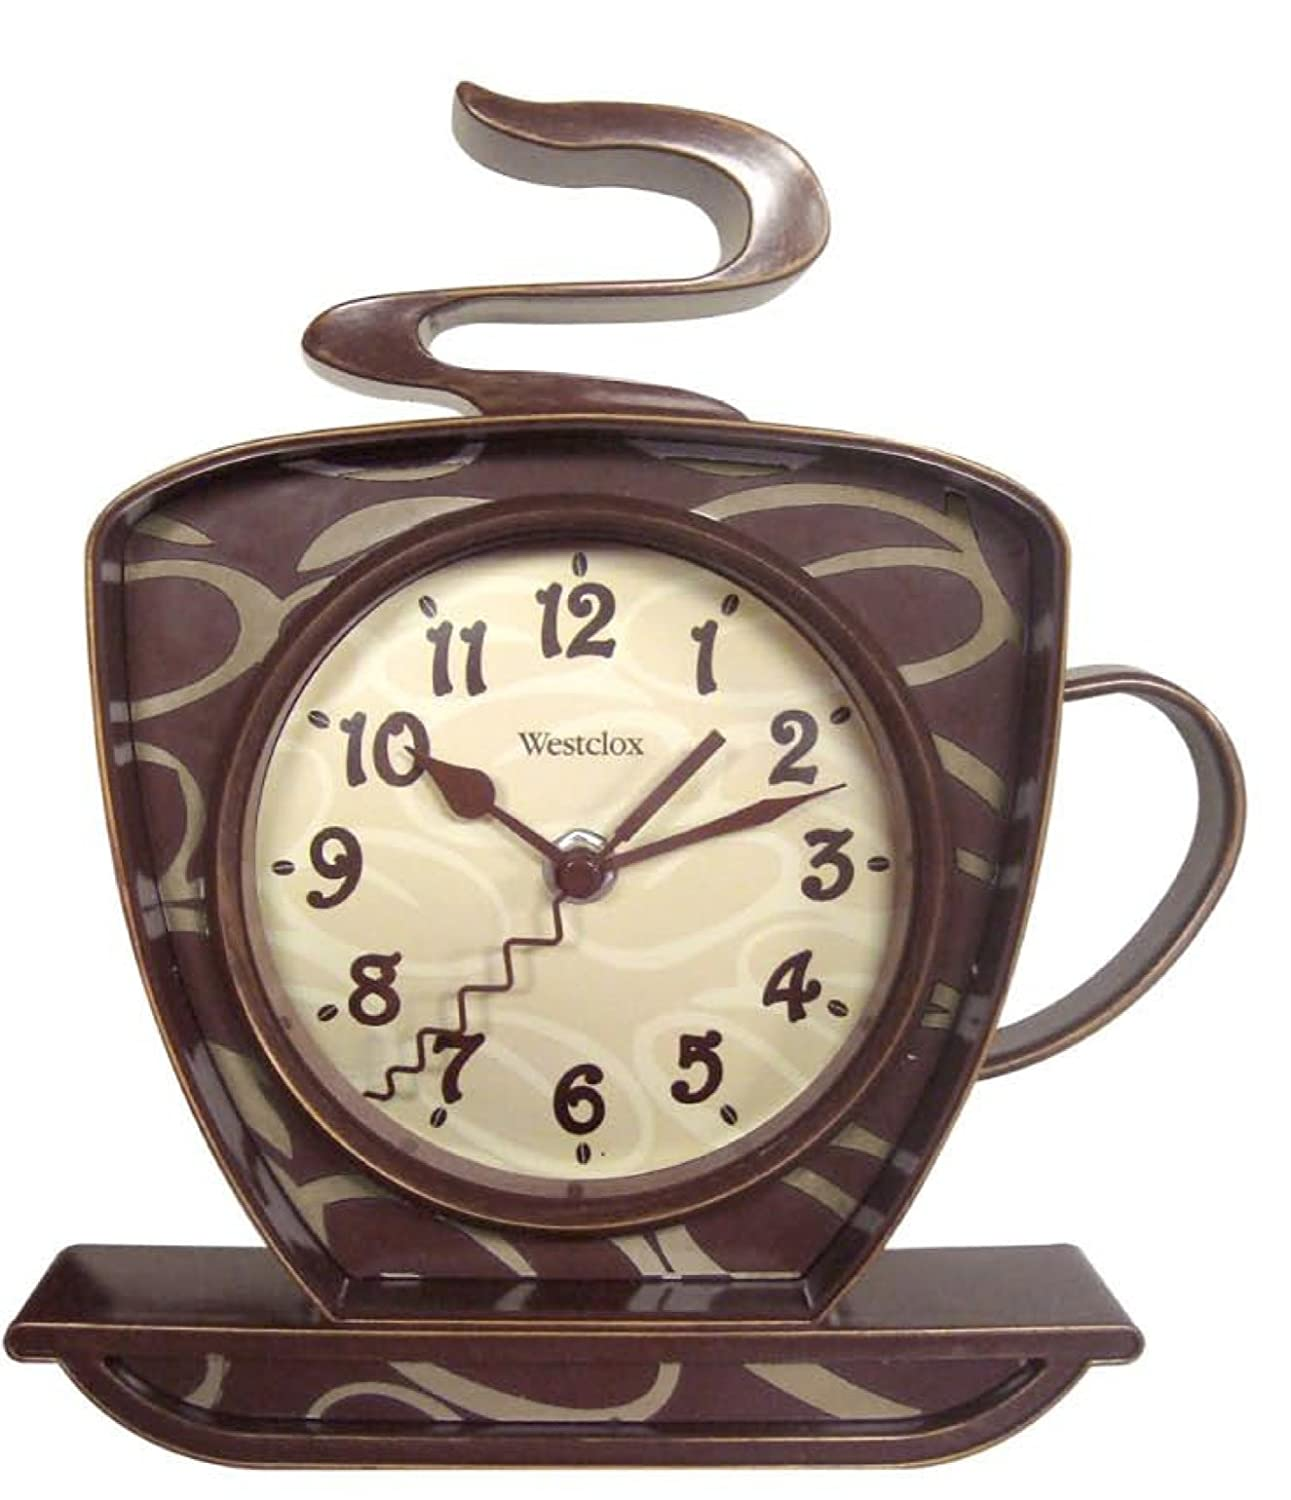 Coffee themed clocks house of rumpley - Coffee themed wall clocks ...